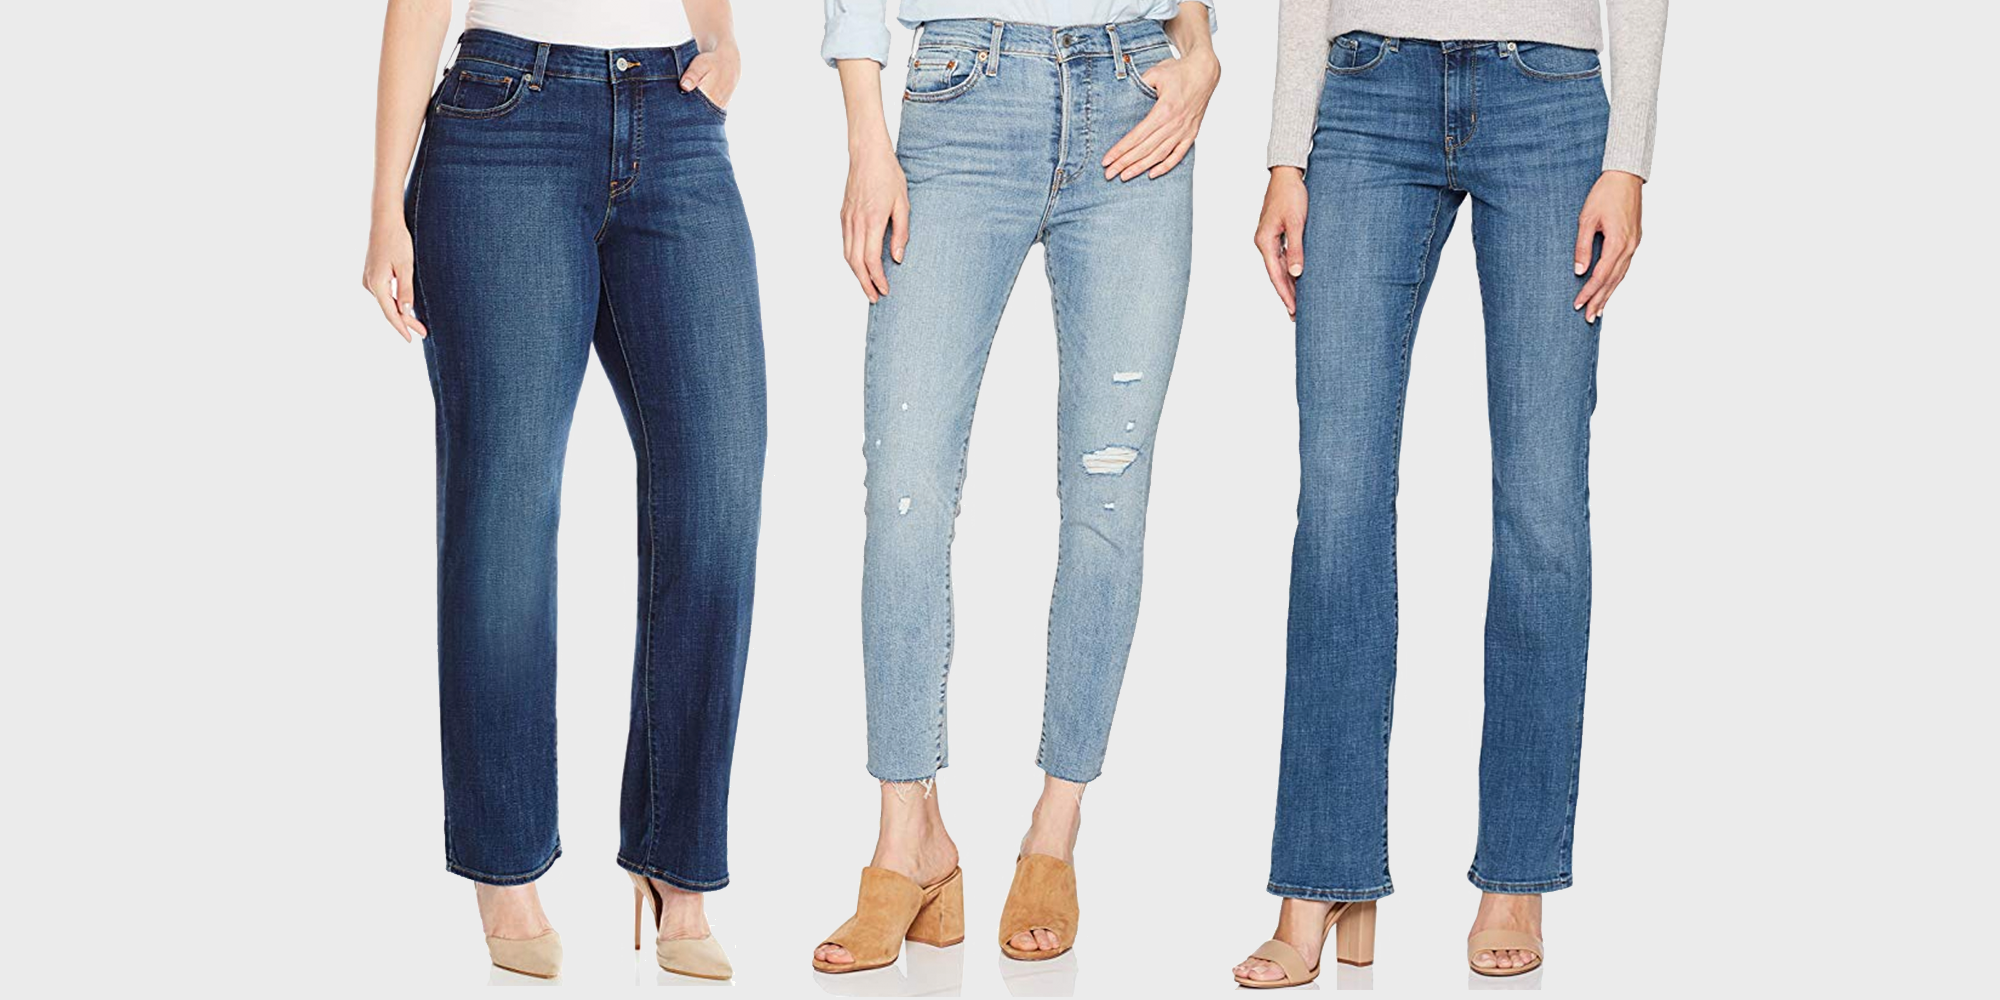 Levi's Incredible Jeans Sale Is Making Me Want a New Pair for Fall